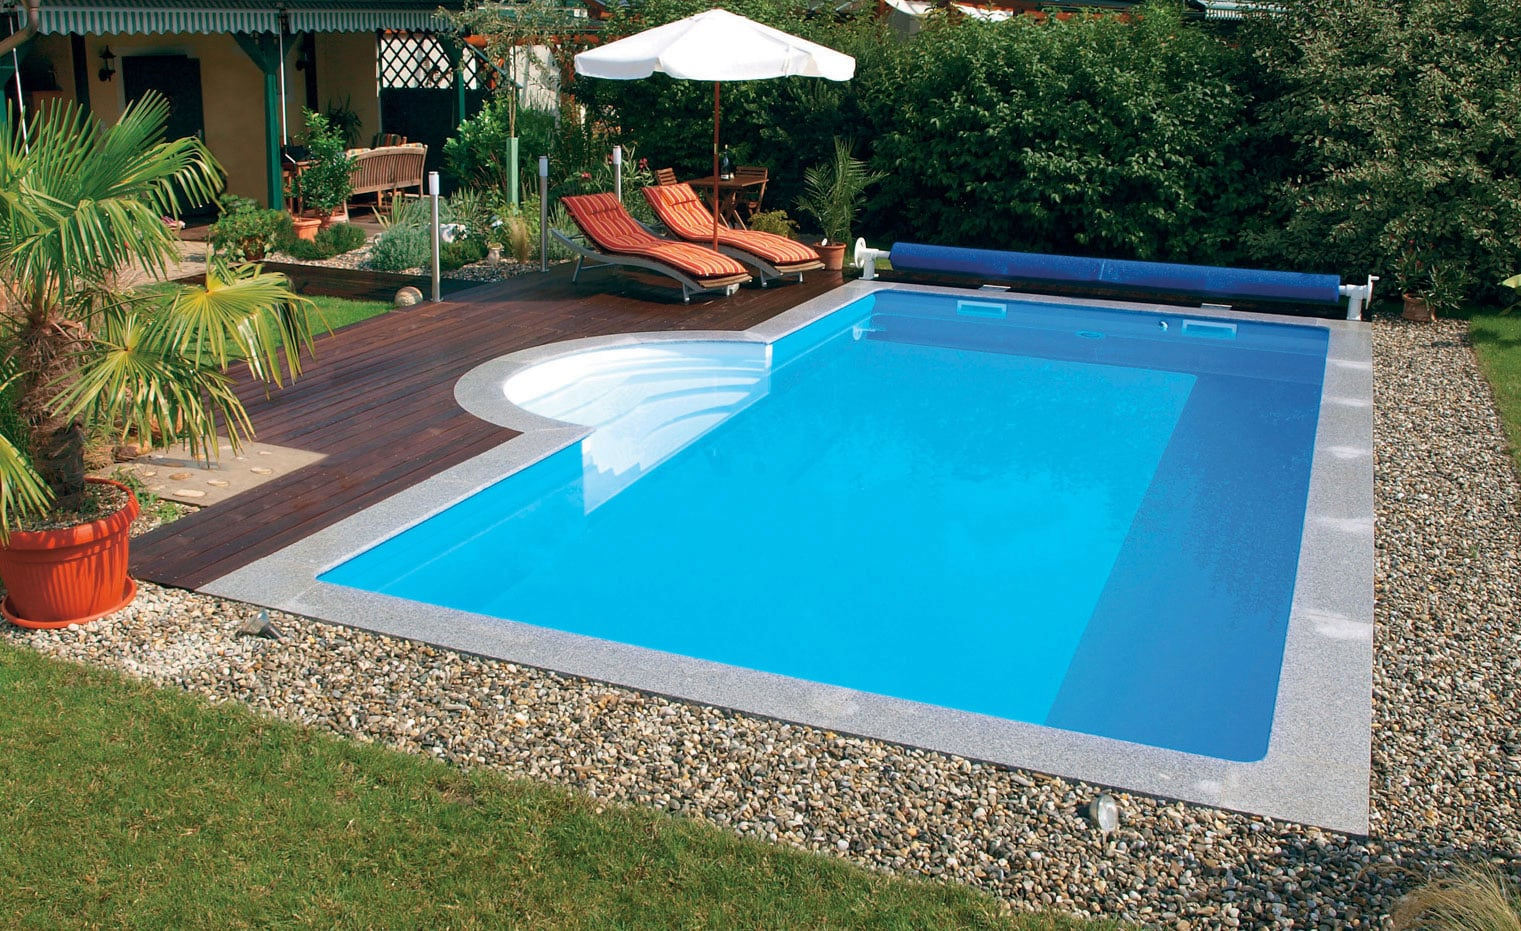 Pool Komplettset Amazon Öko Pool Komplettset Highlight 900 X 500 X 150 Cm